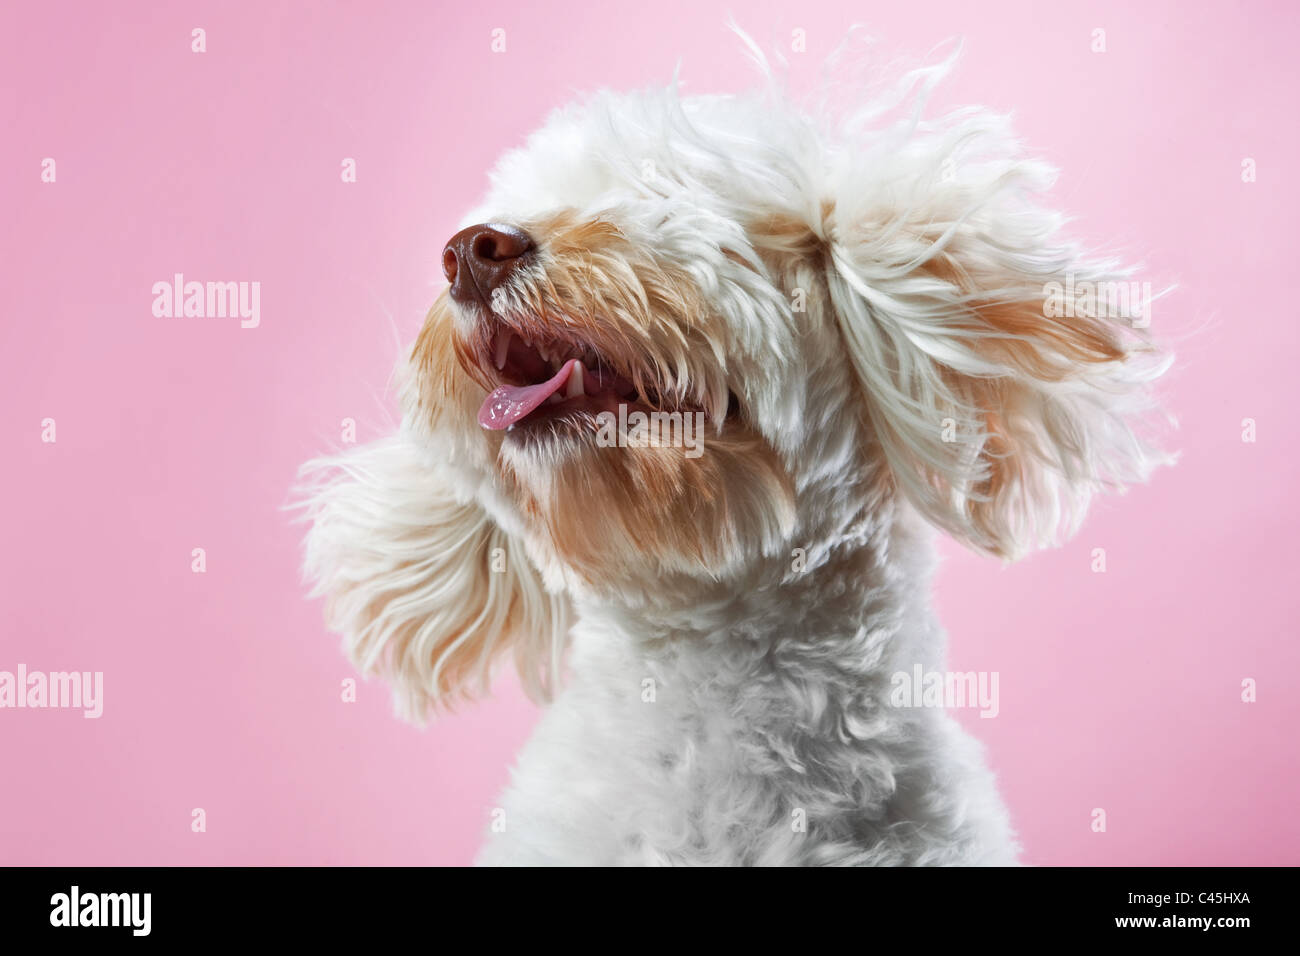 Blanches Maltese dog rose sur un fond de studio. Photo Stock